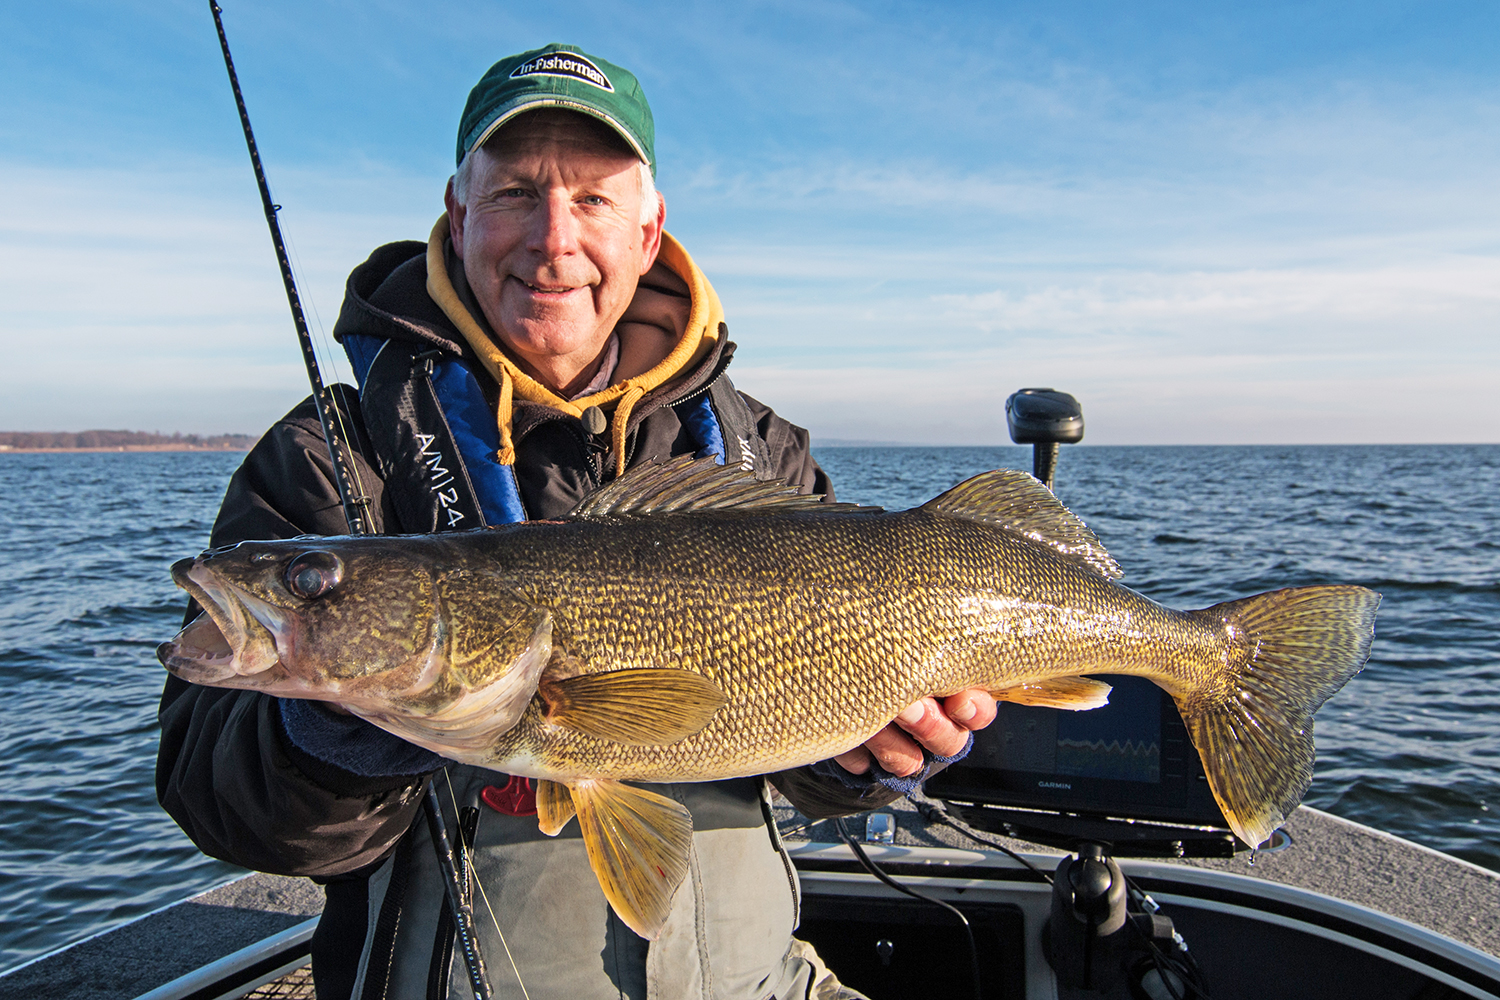 Consider food when targeting late season walleyes